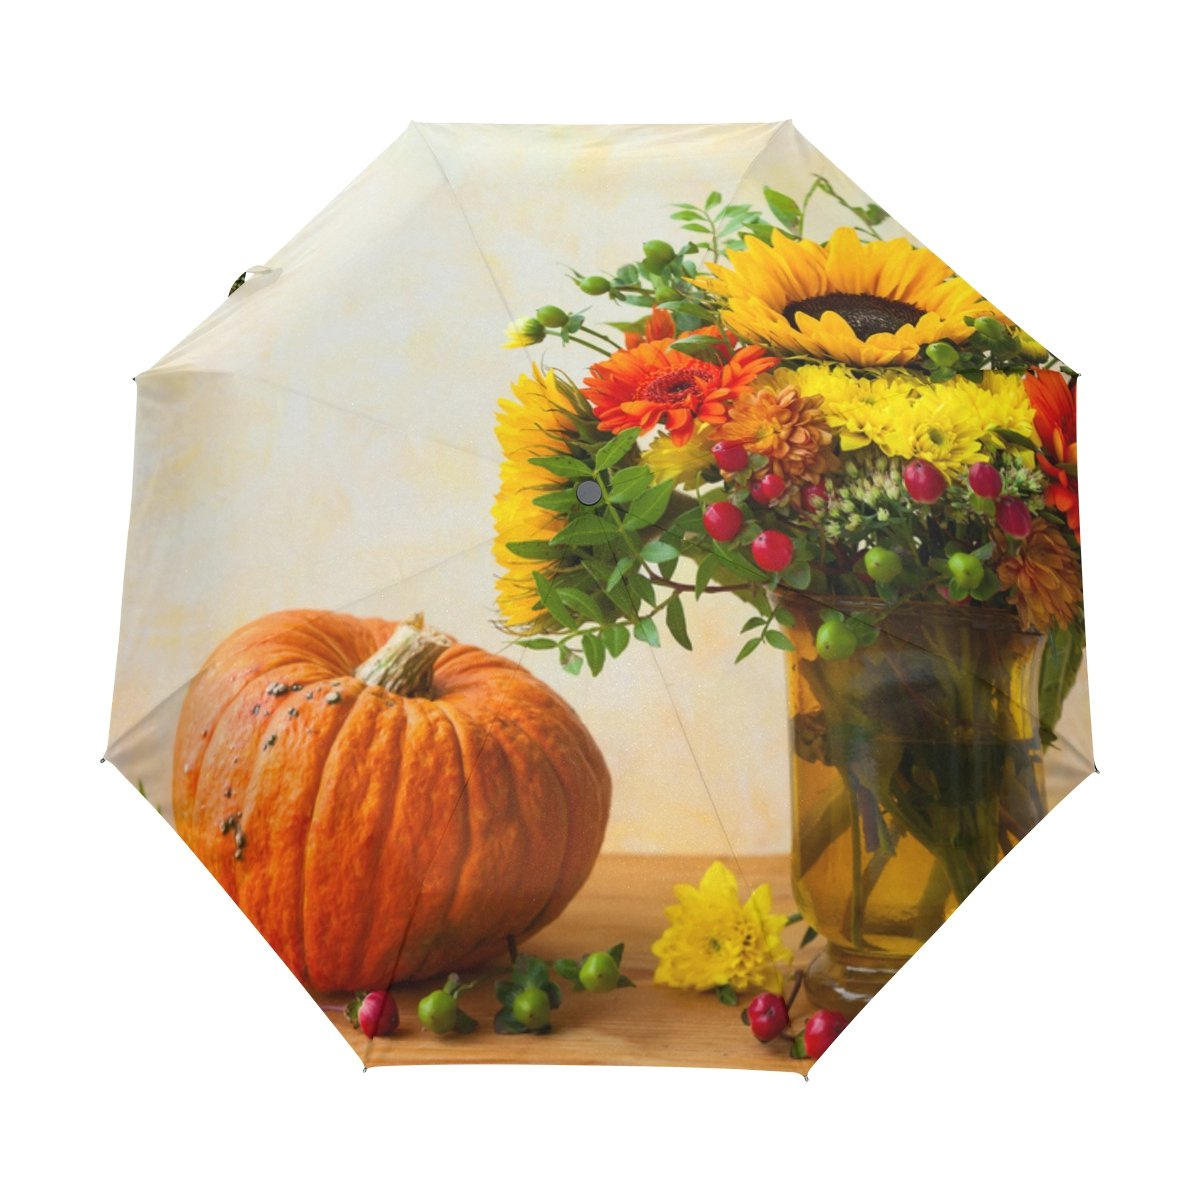 08dbff22ec13 Windproof Auto Open Close Umbrella Flower Bonquet Compact Travel ...